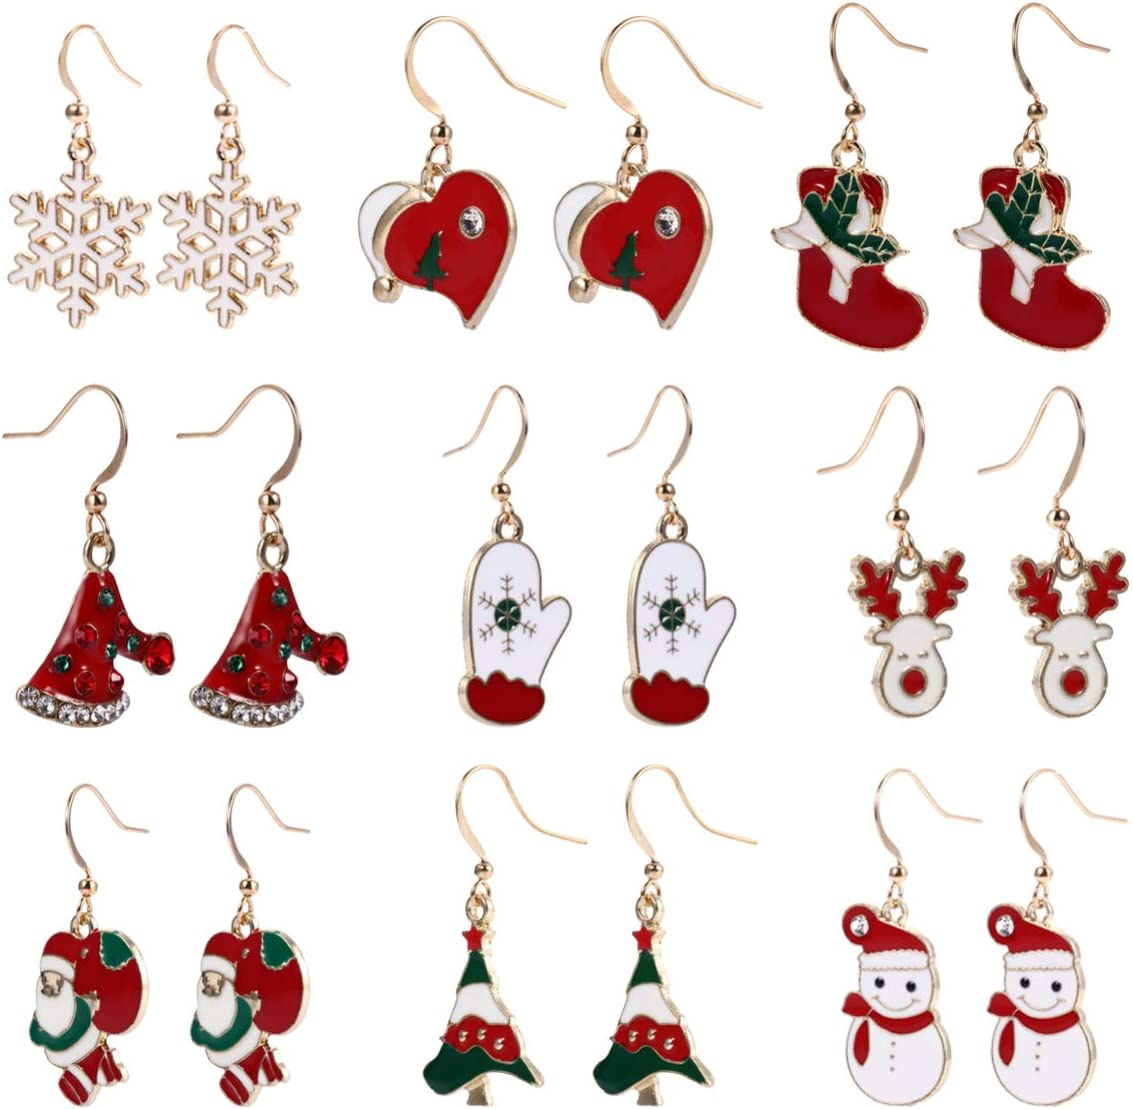 Healifty 9 Pairs Christmas Earrings Santa Claus Elk Snowman Christmas Tree Dangle Earrings Holiday Jewelry Set for Christmas Costumes Accessories